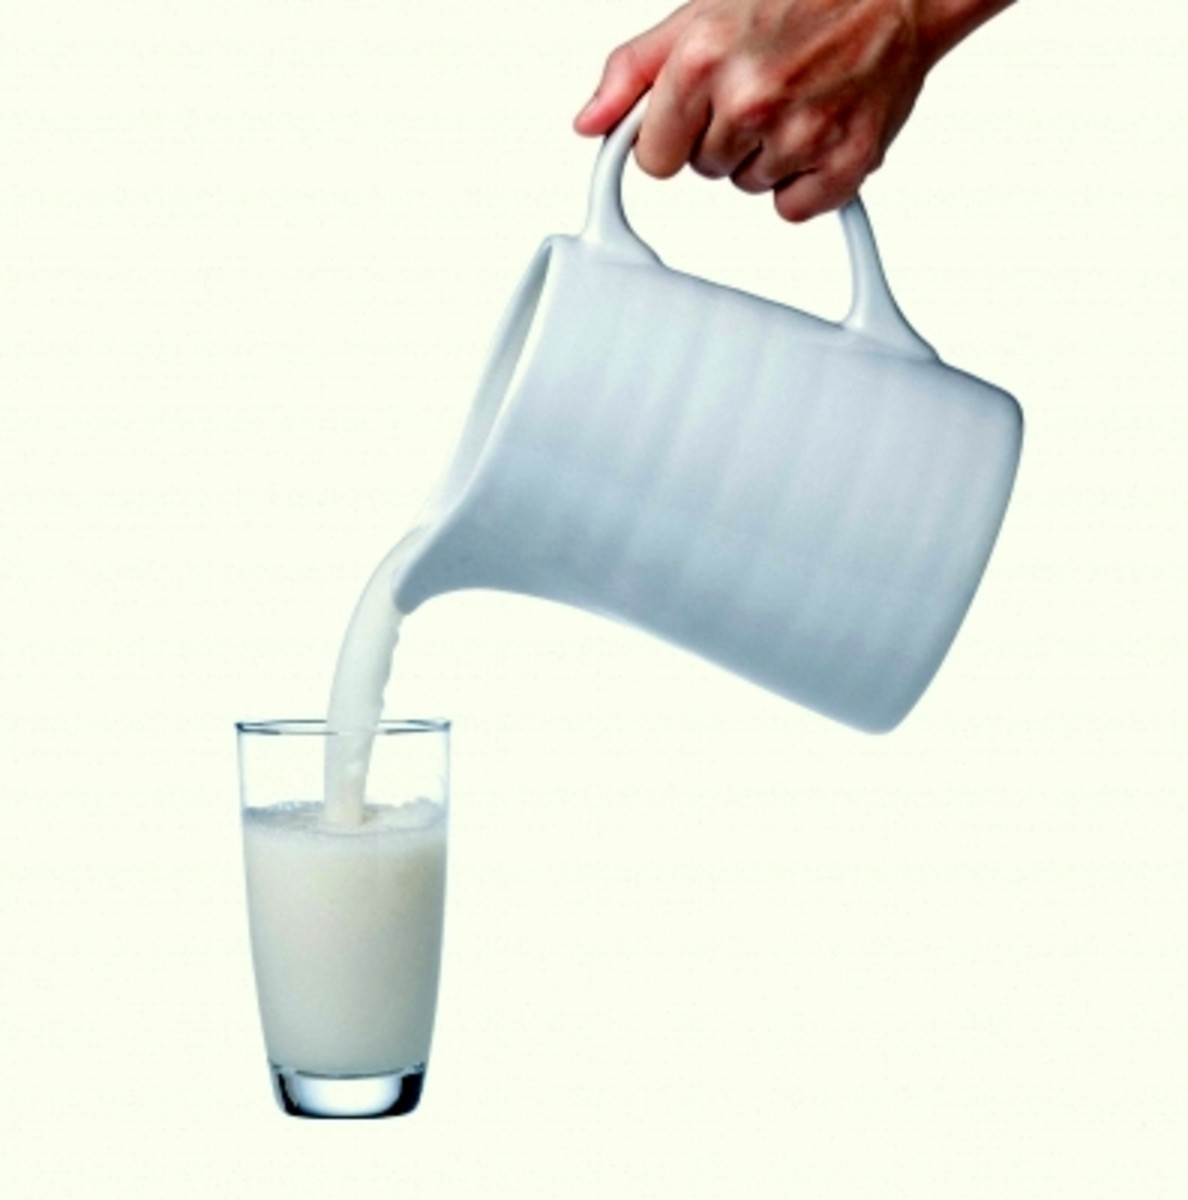 Milk is a surprising source of protein